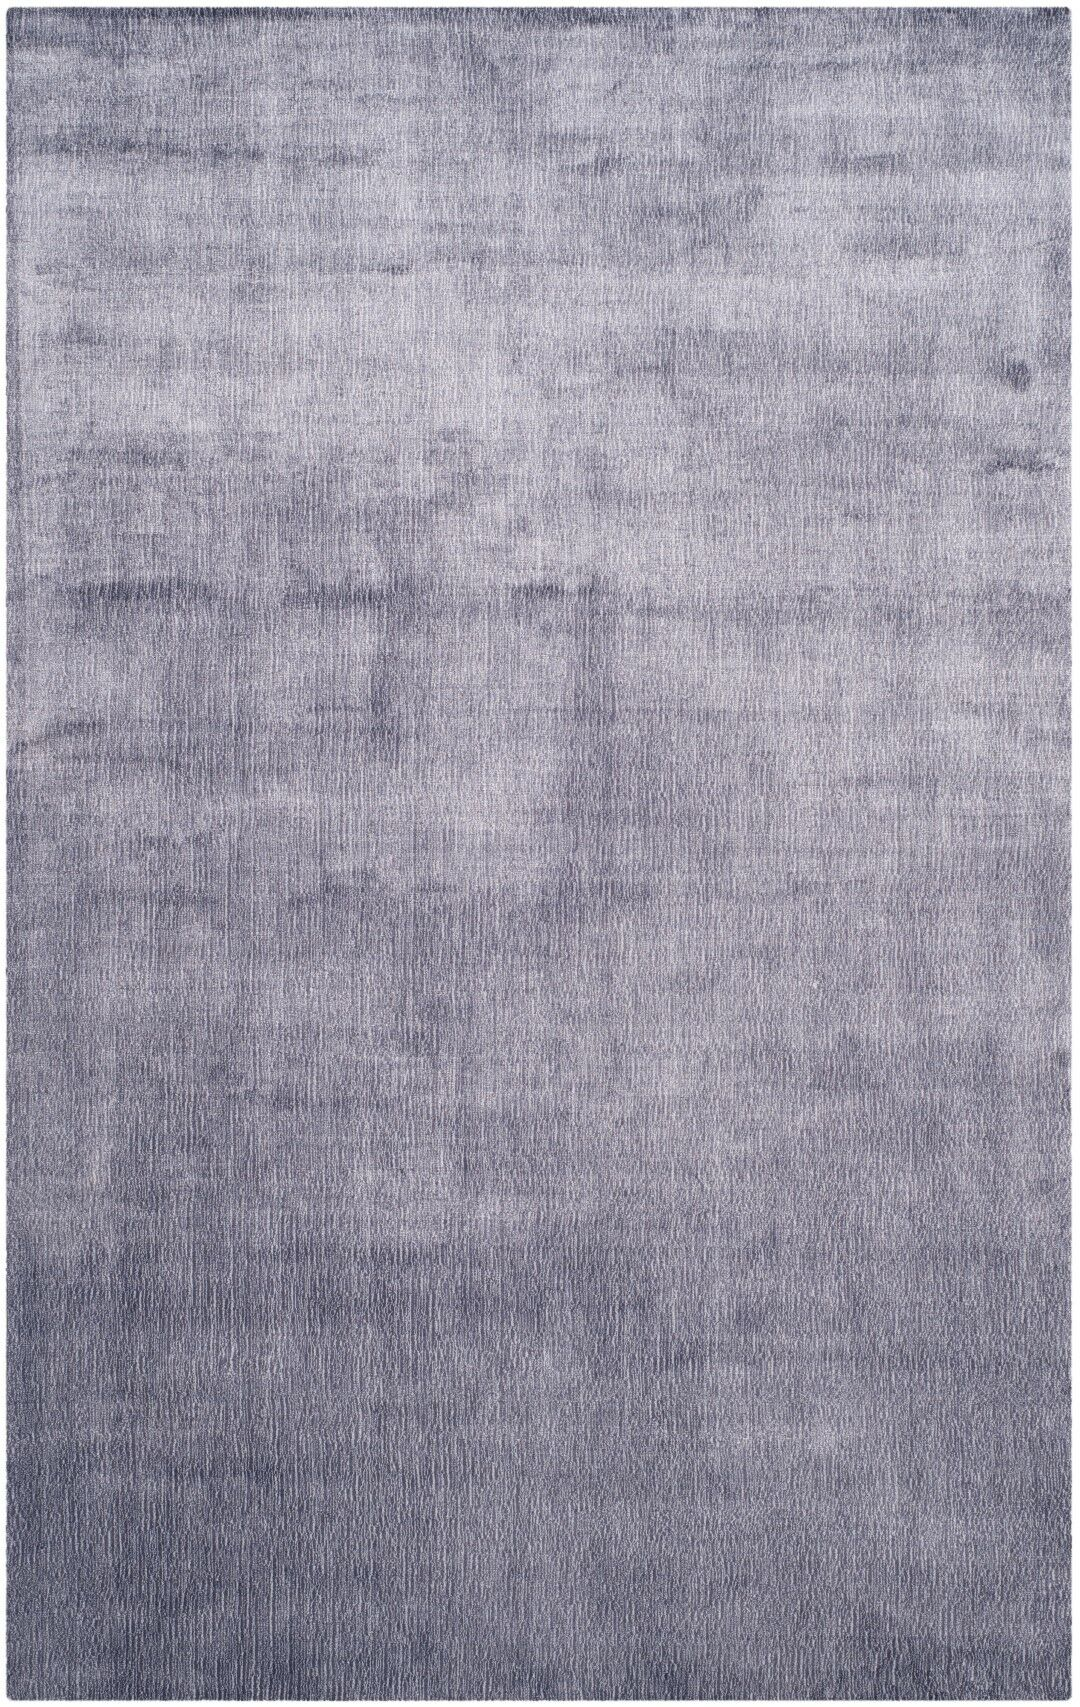 Wald Hand-Knotted Lavender Aura Area Rug Rug Size: Rectangle 8' x 10'